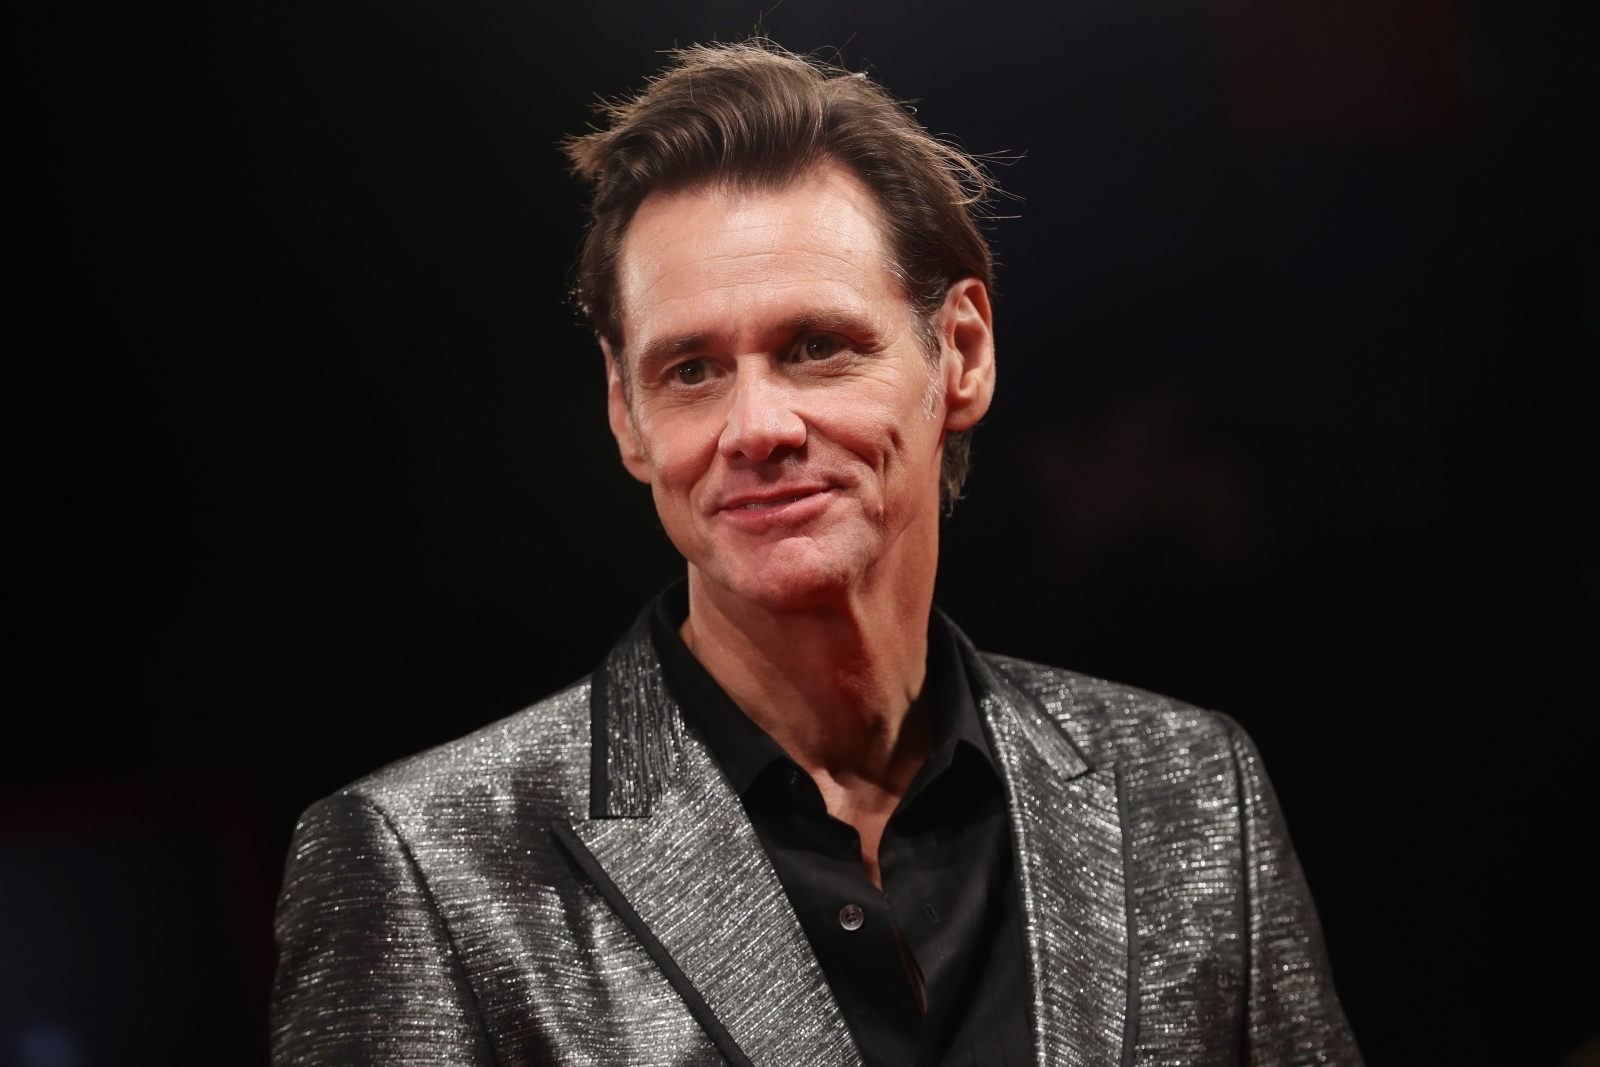 'He looks horrible': Jim Carrey fans are concerned for the ... Jim Carrey